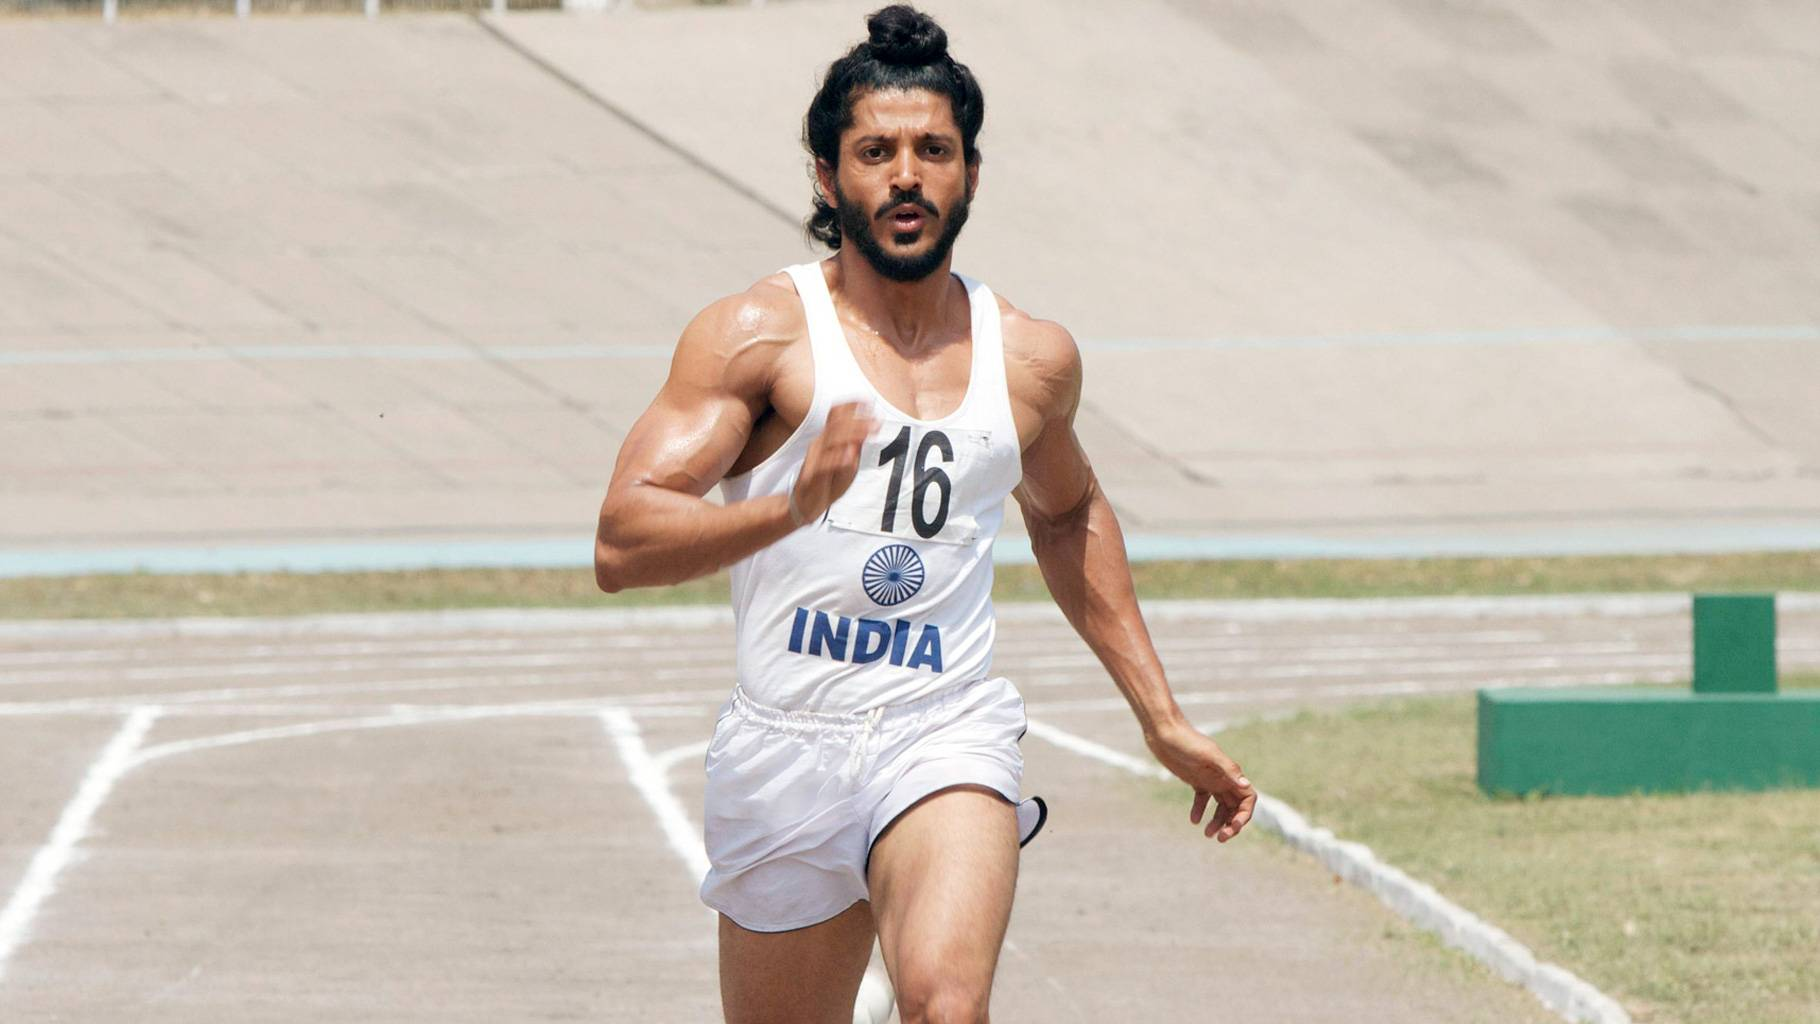 Photo of Bhaag Milkha Bhaag: 4 Important Life Lessons You Can Learn From The Flying Sikh Biopic!